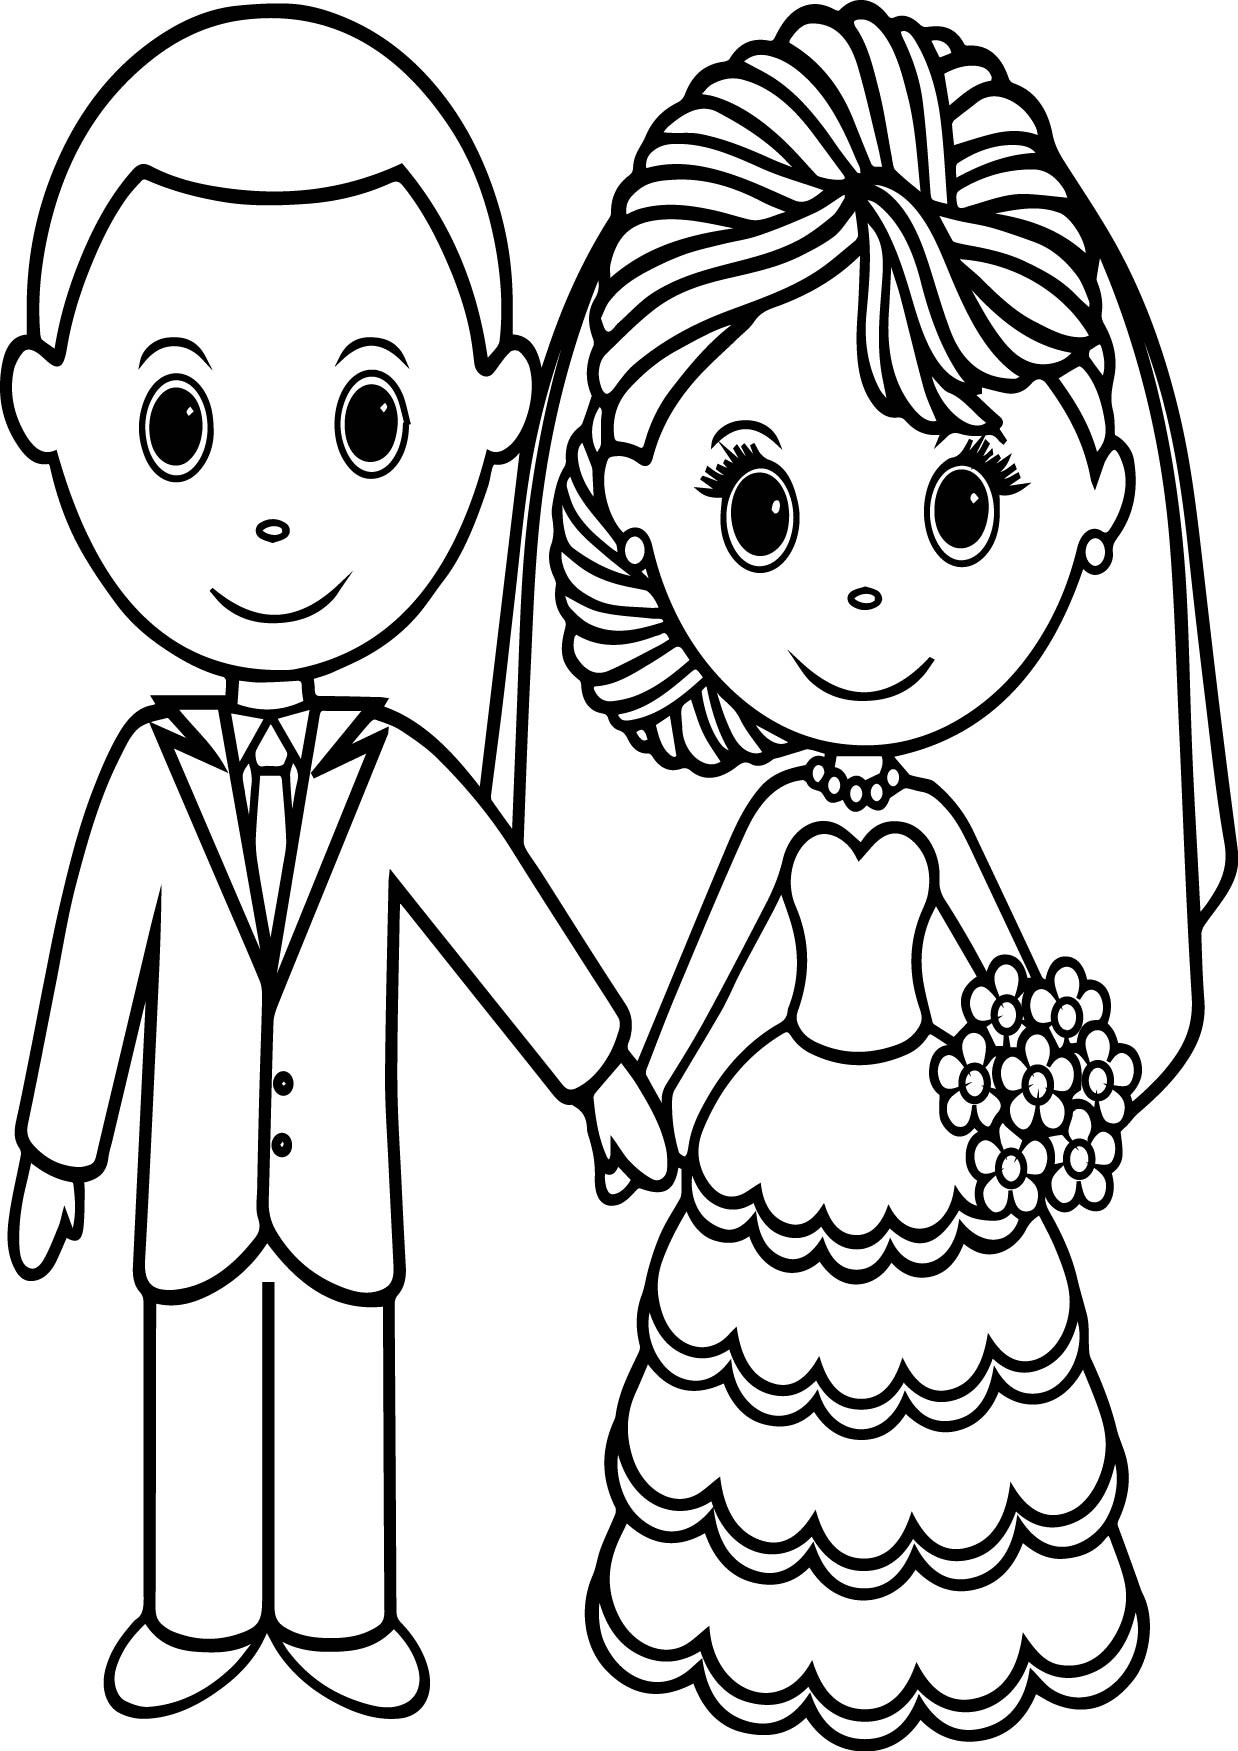 1238x1751 Security Free Wedding Coloring Pages Sturdy Pi